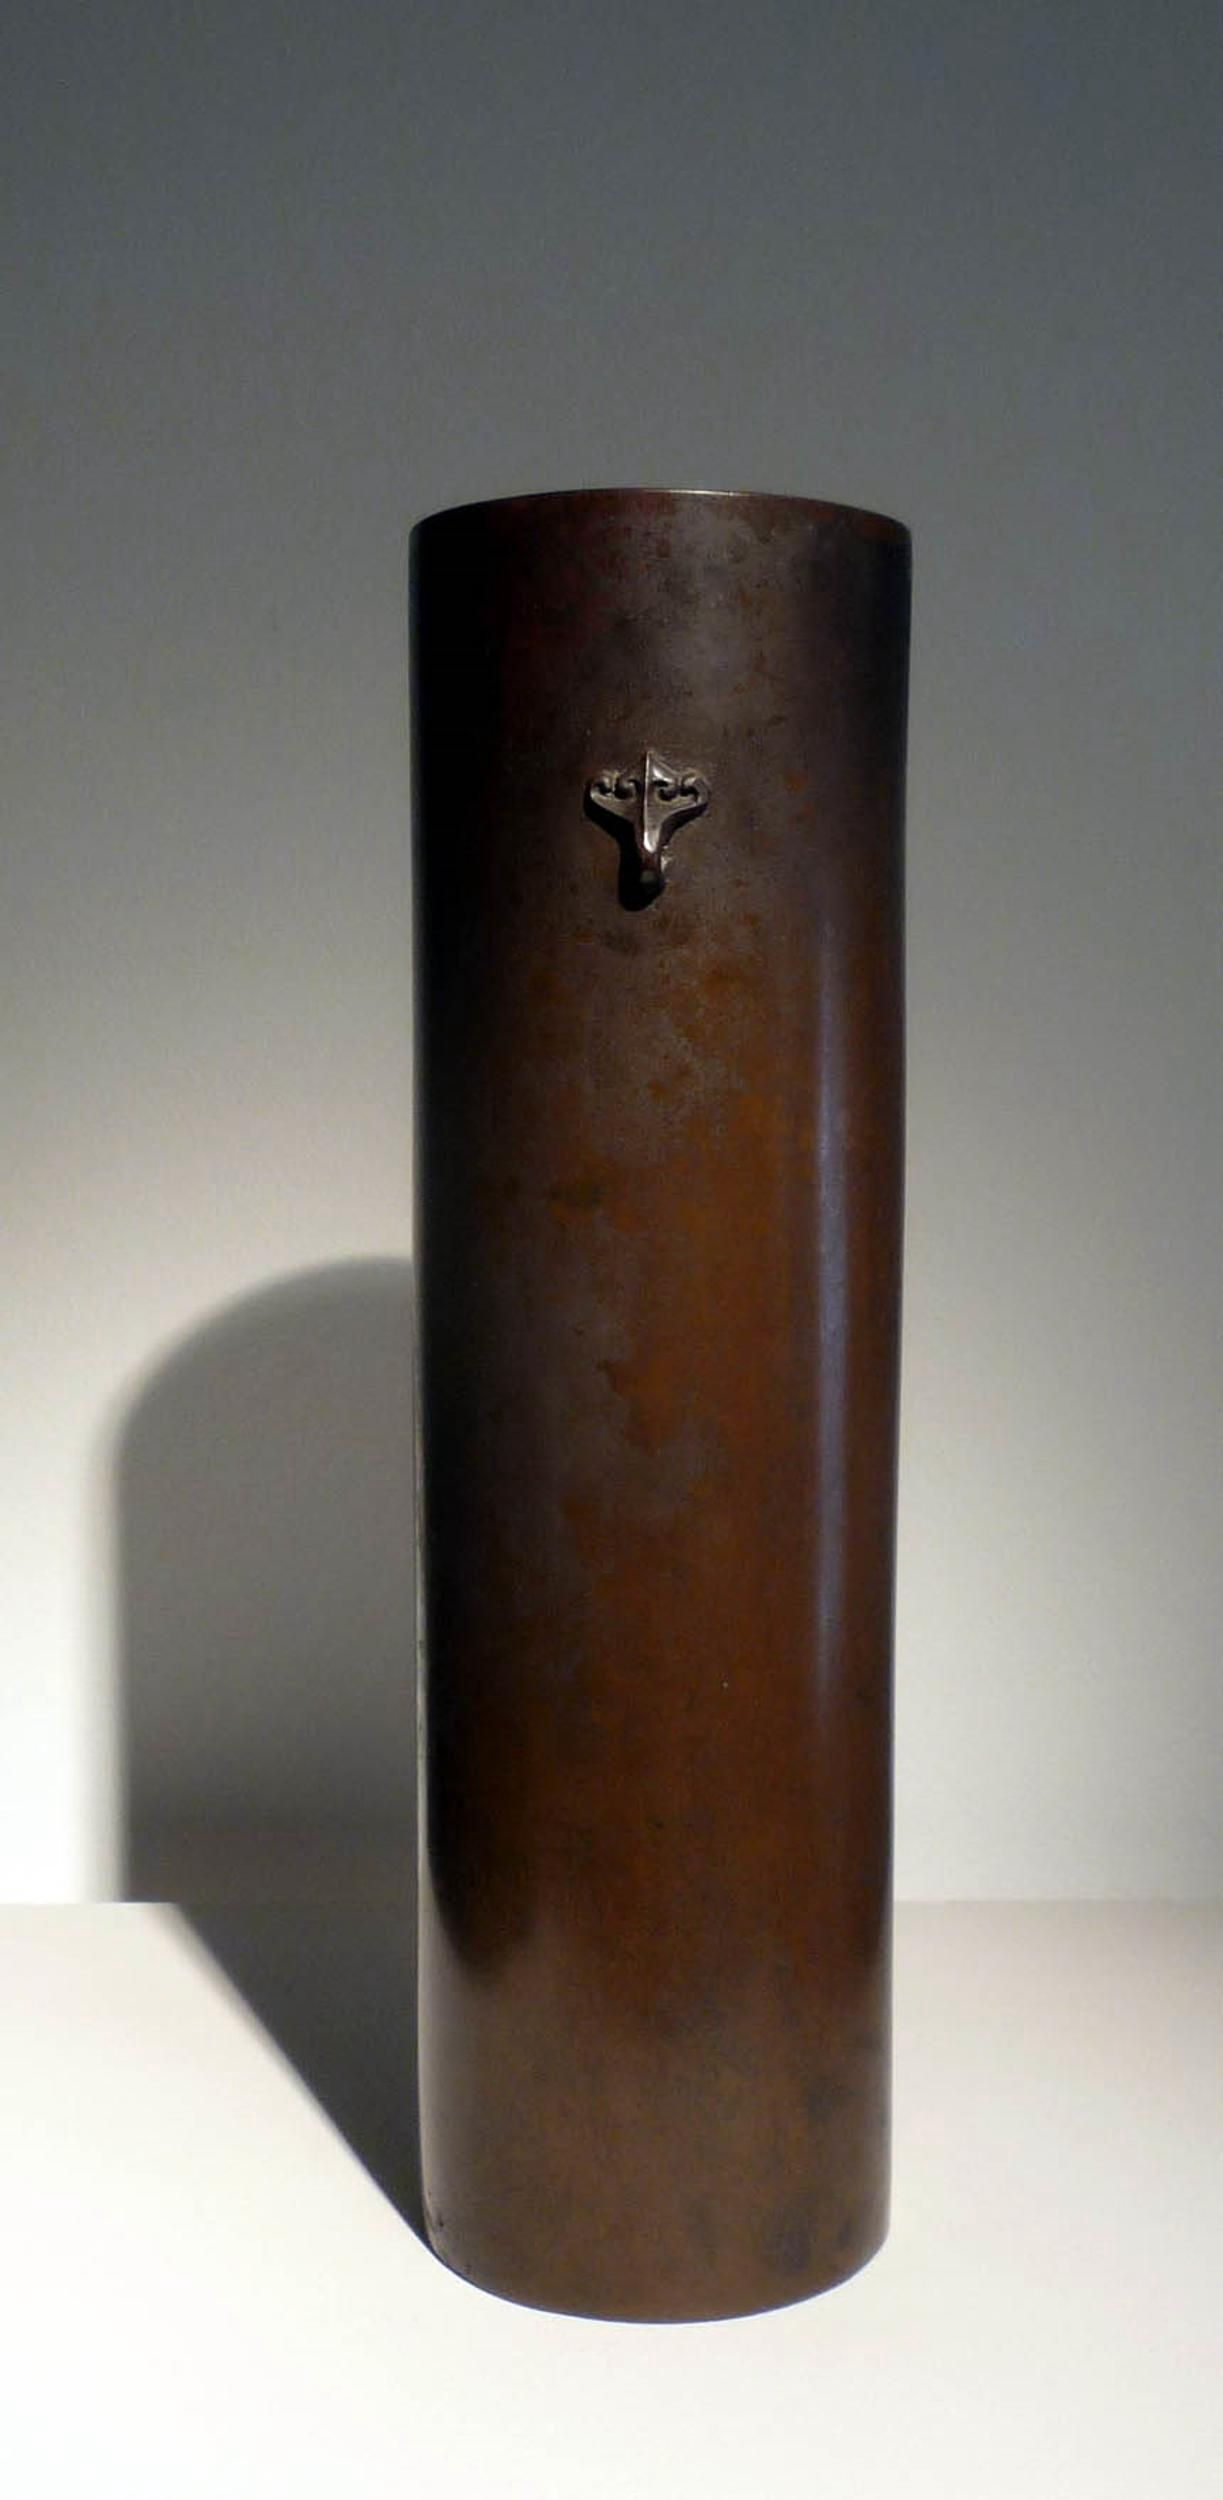 A cylindrical bronze flower vessel.  - Signed: Zoroku.  - Japan 19th century Meiji period